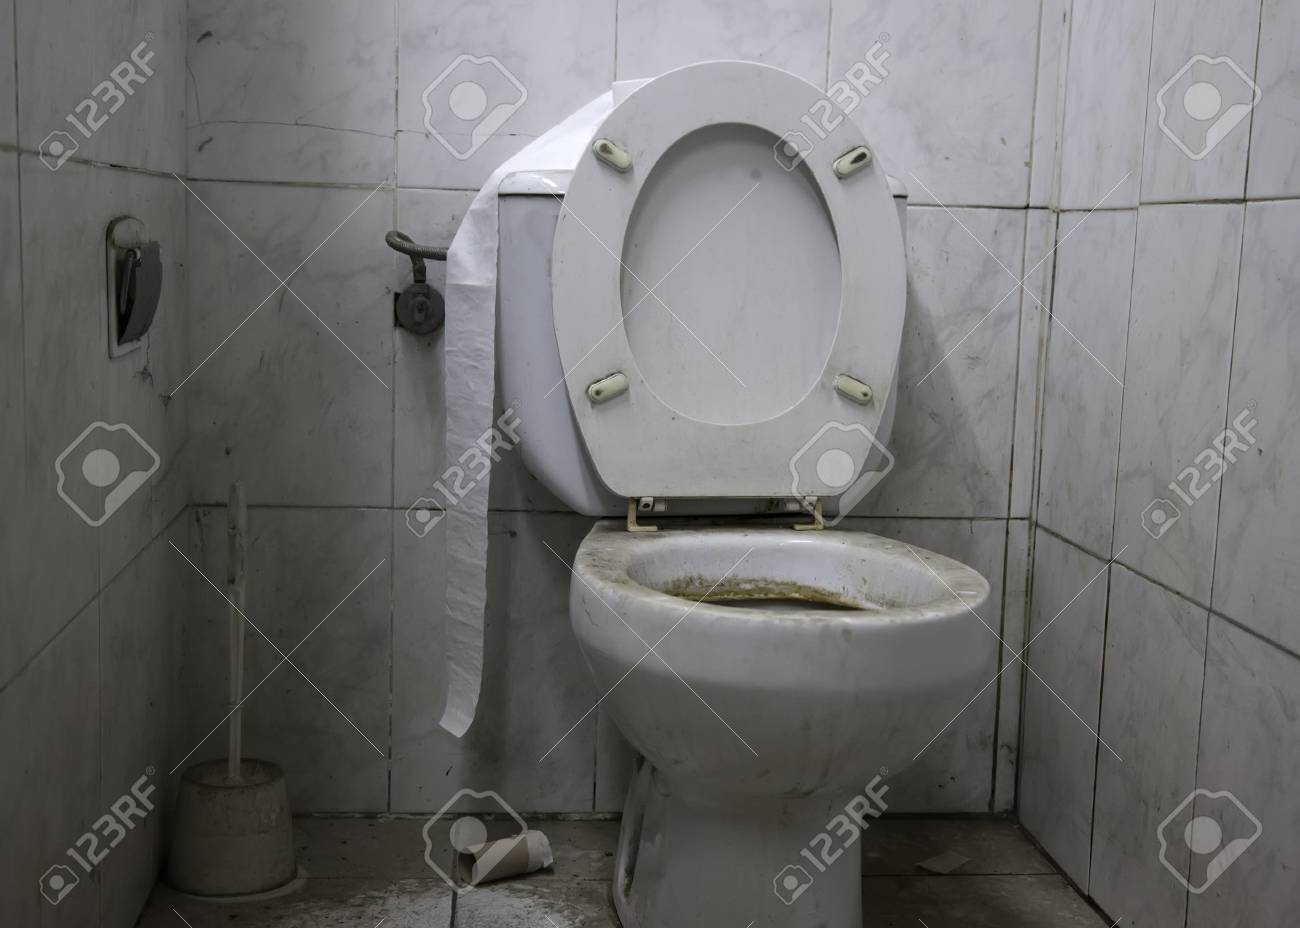 Pleasant Toilet Dirty And Full Of Dust Unhygienic Room Abandonment Pdpeps Interior Chair Design Pdpepsorg